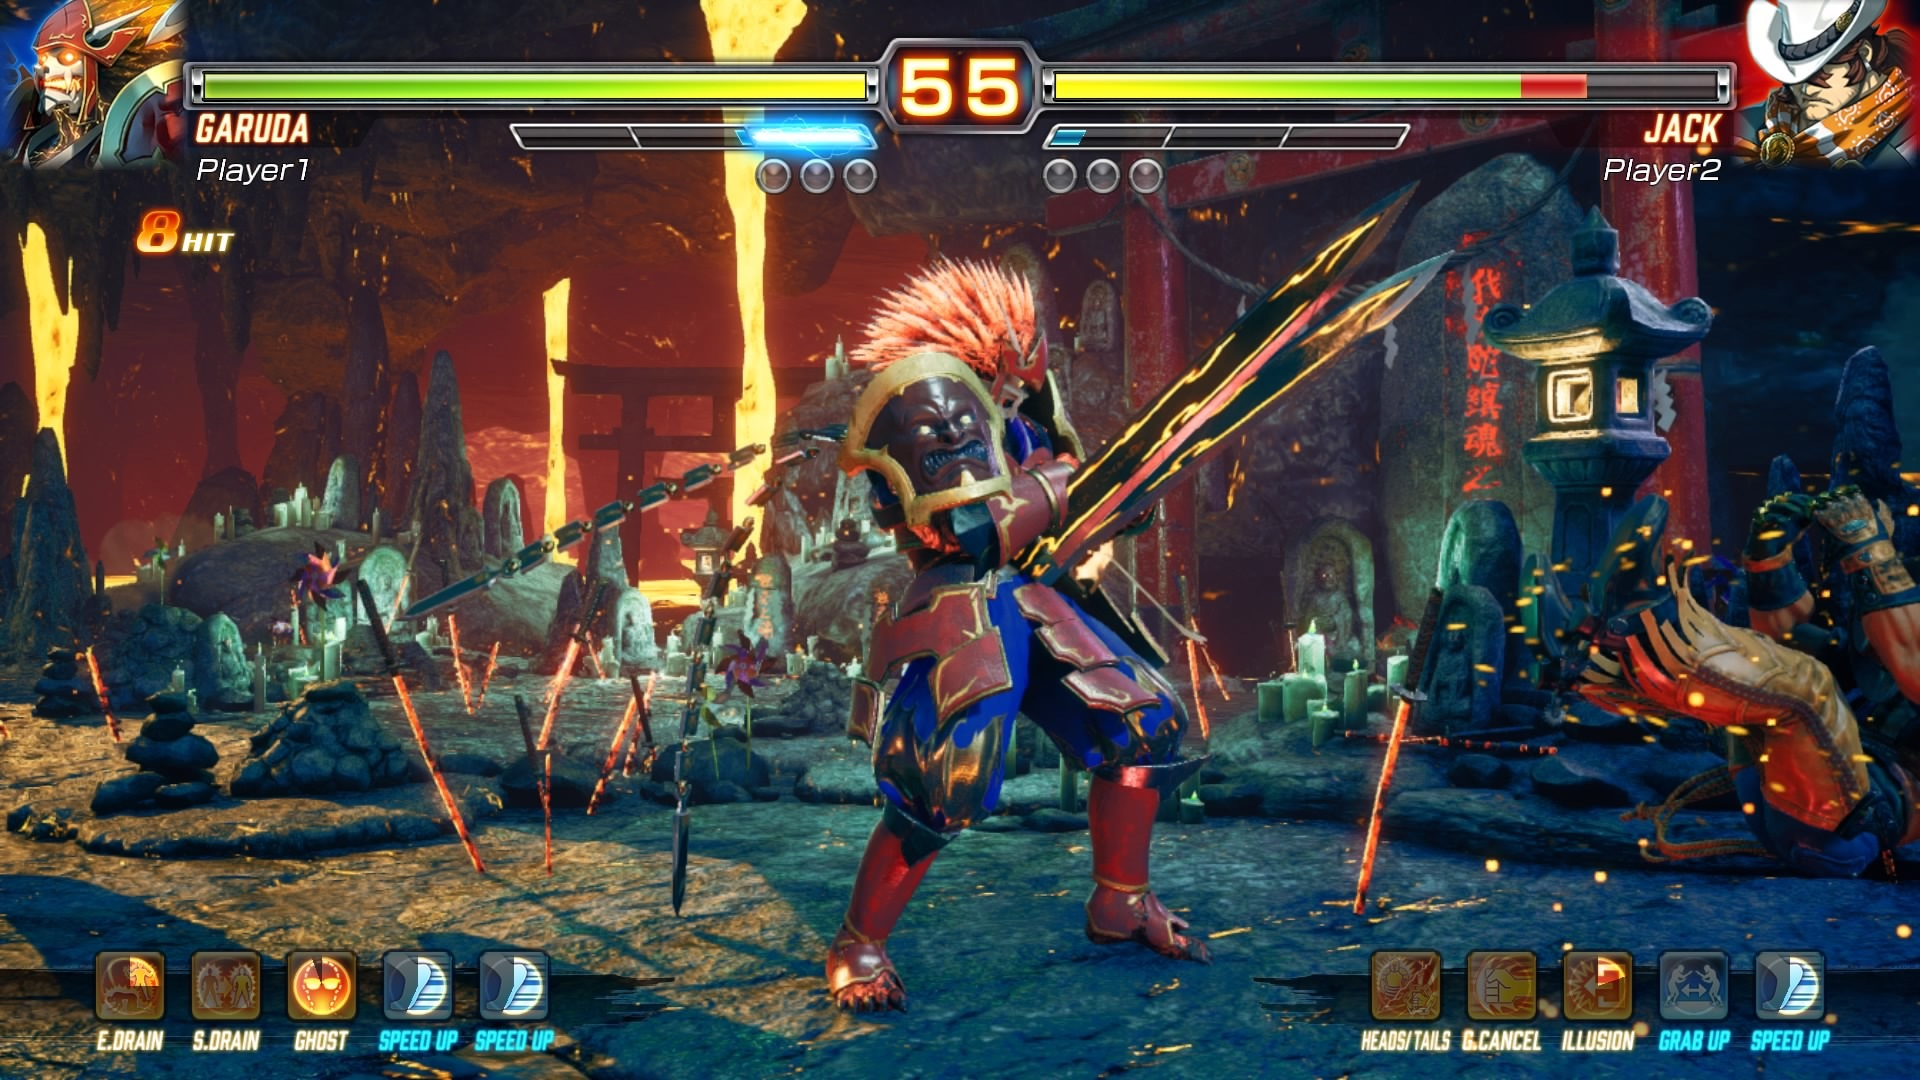 Best Fighting Game - Best of 2011 Wiki Guide - IGN